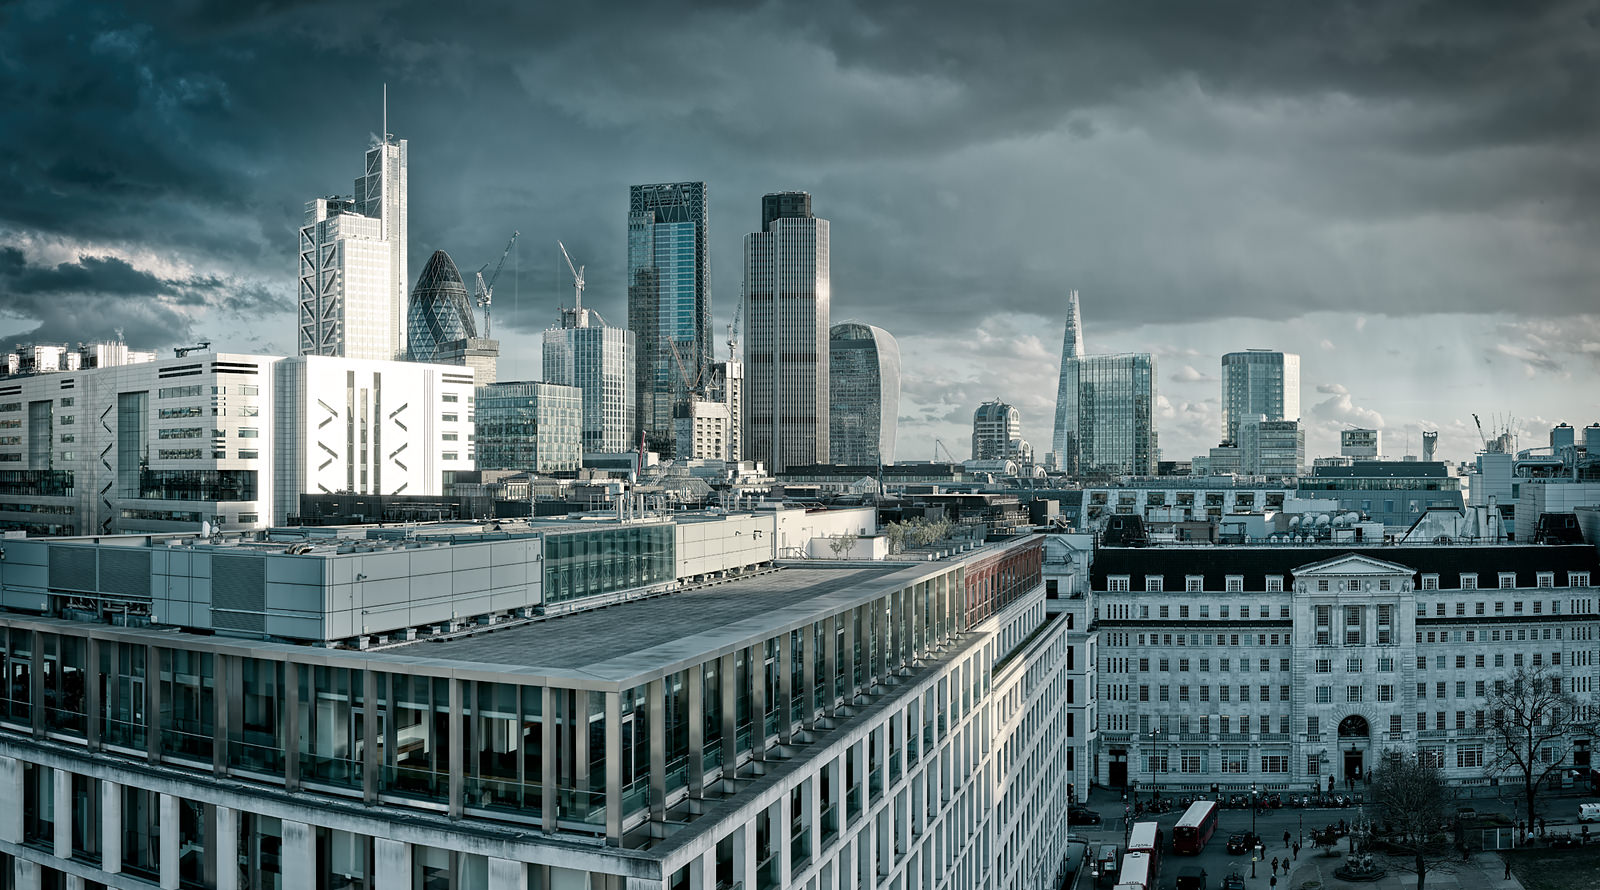 The City From Finsbury Square Acrylic - Will Pearson Fine Art Photographic Print